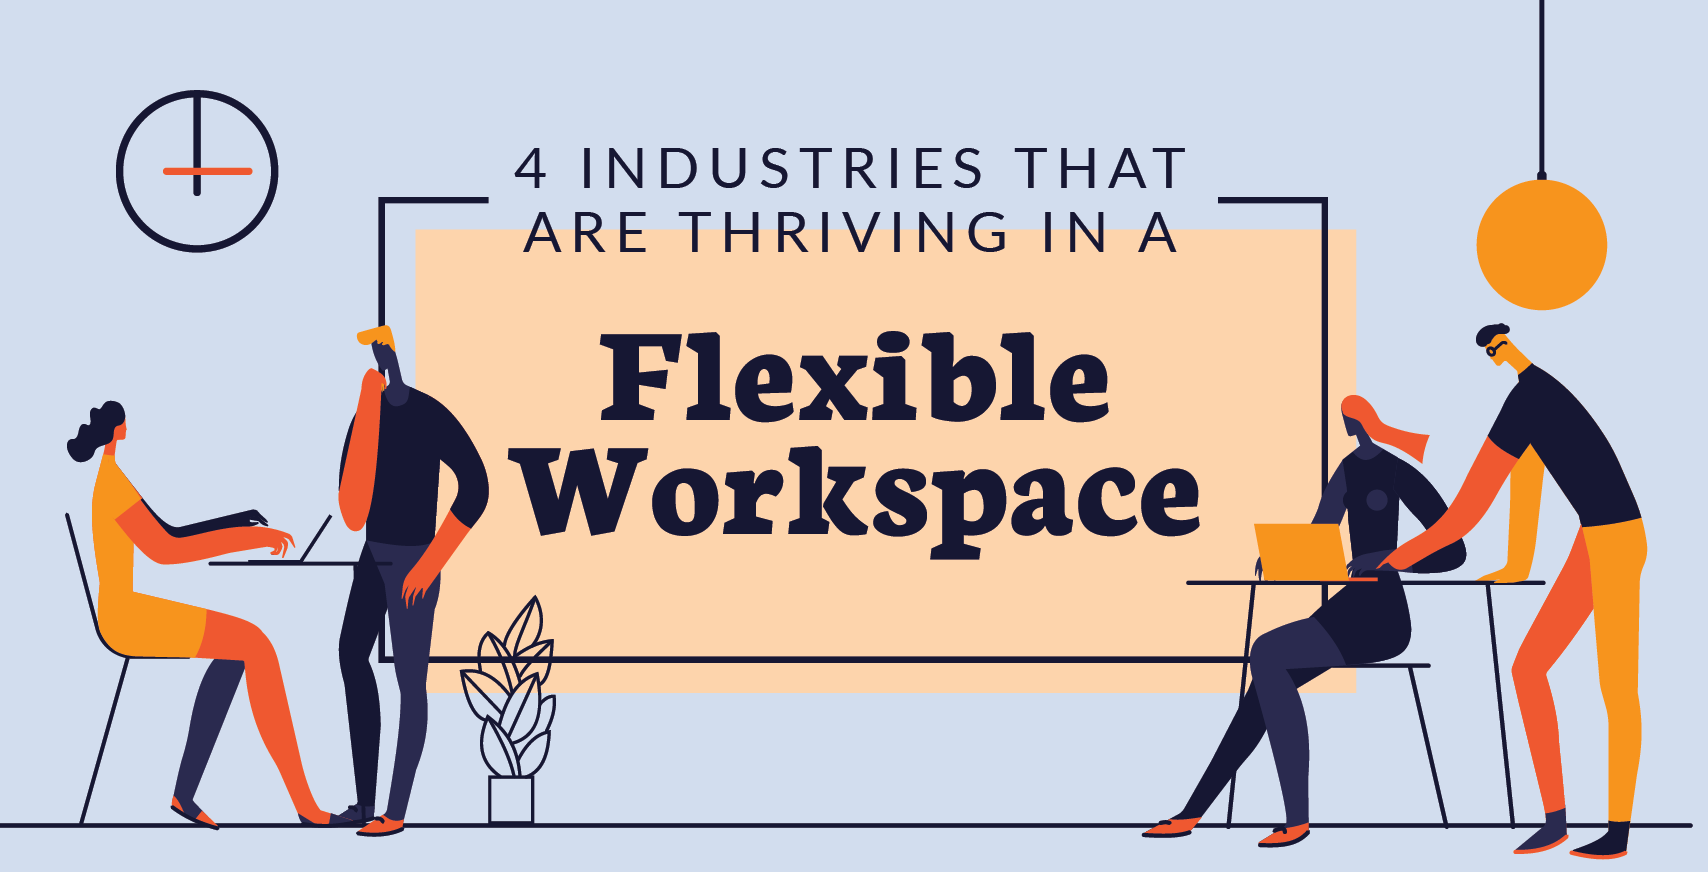 Table De Ping Pong Transformable 4 industries that are thriving in a flexible workspace